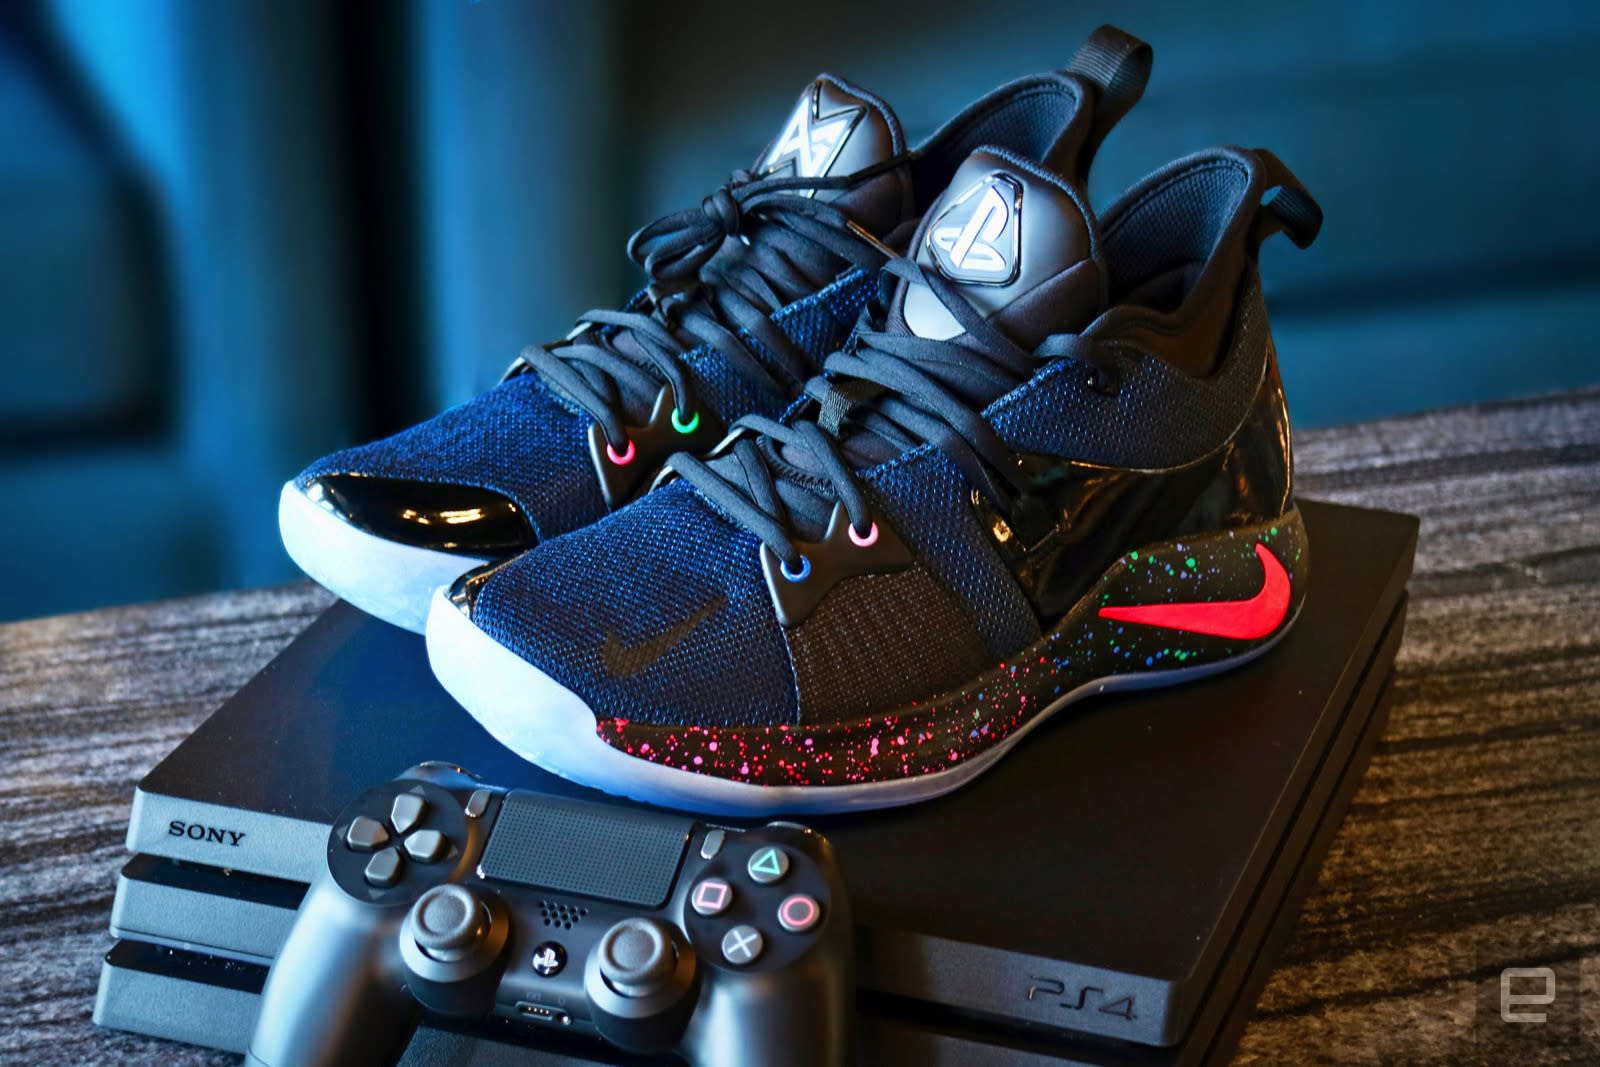 new product ebd14 4f9d6 Nike's 'PlayStation' shoes make hypebeasts out of gamers